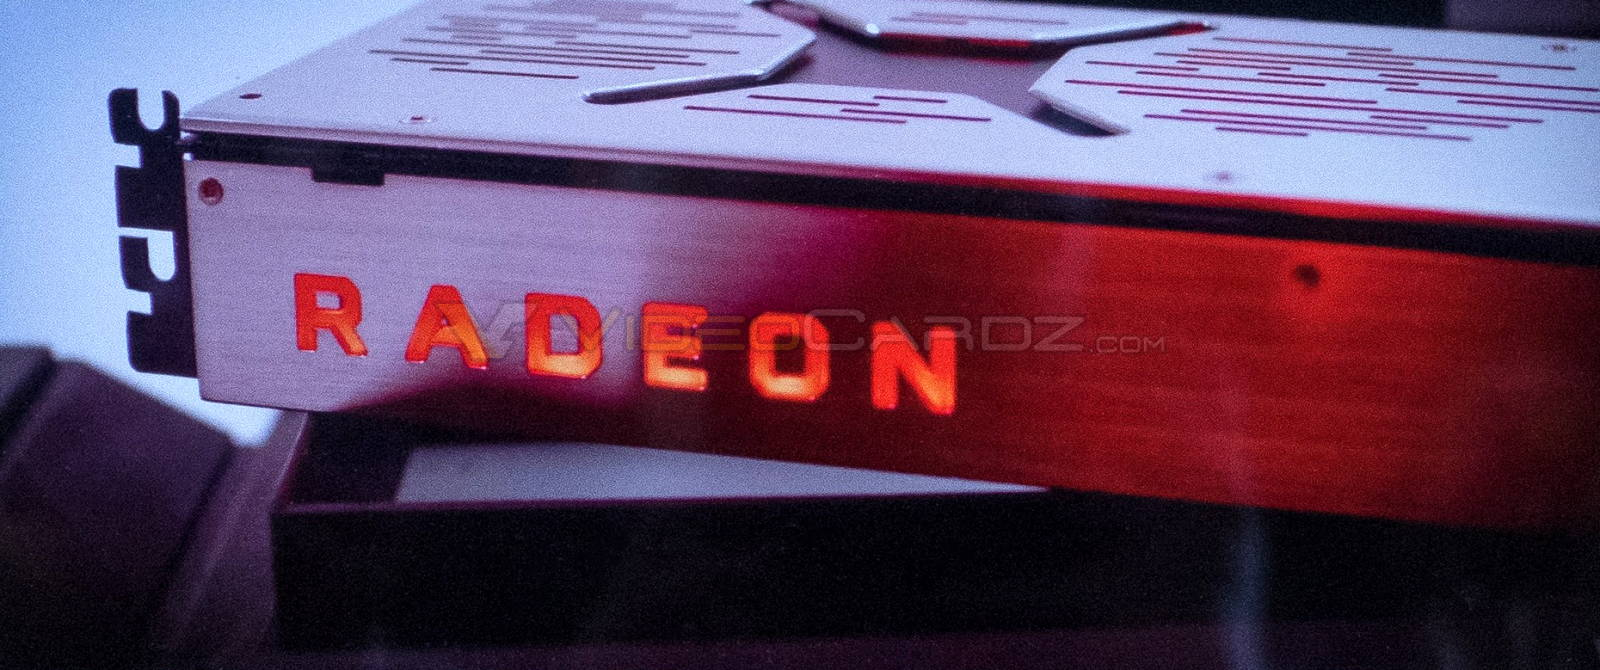 AMD Radeon RX Vega 2 2 FireStrike Benchmark results of the AMD RX Vega rank it better than the GTX 1080 once again